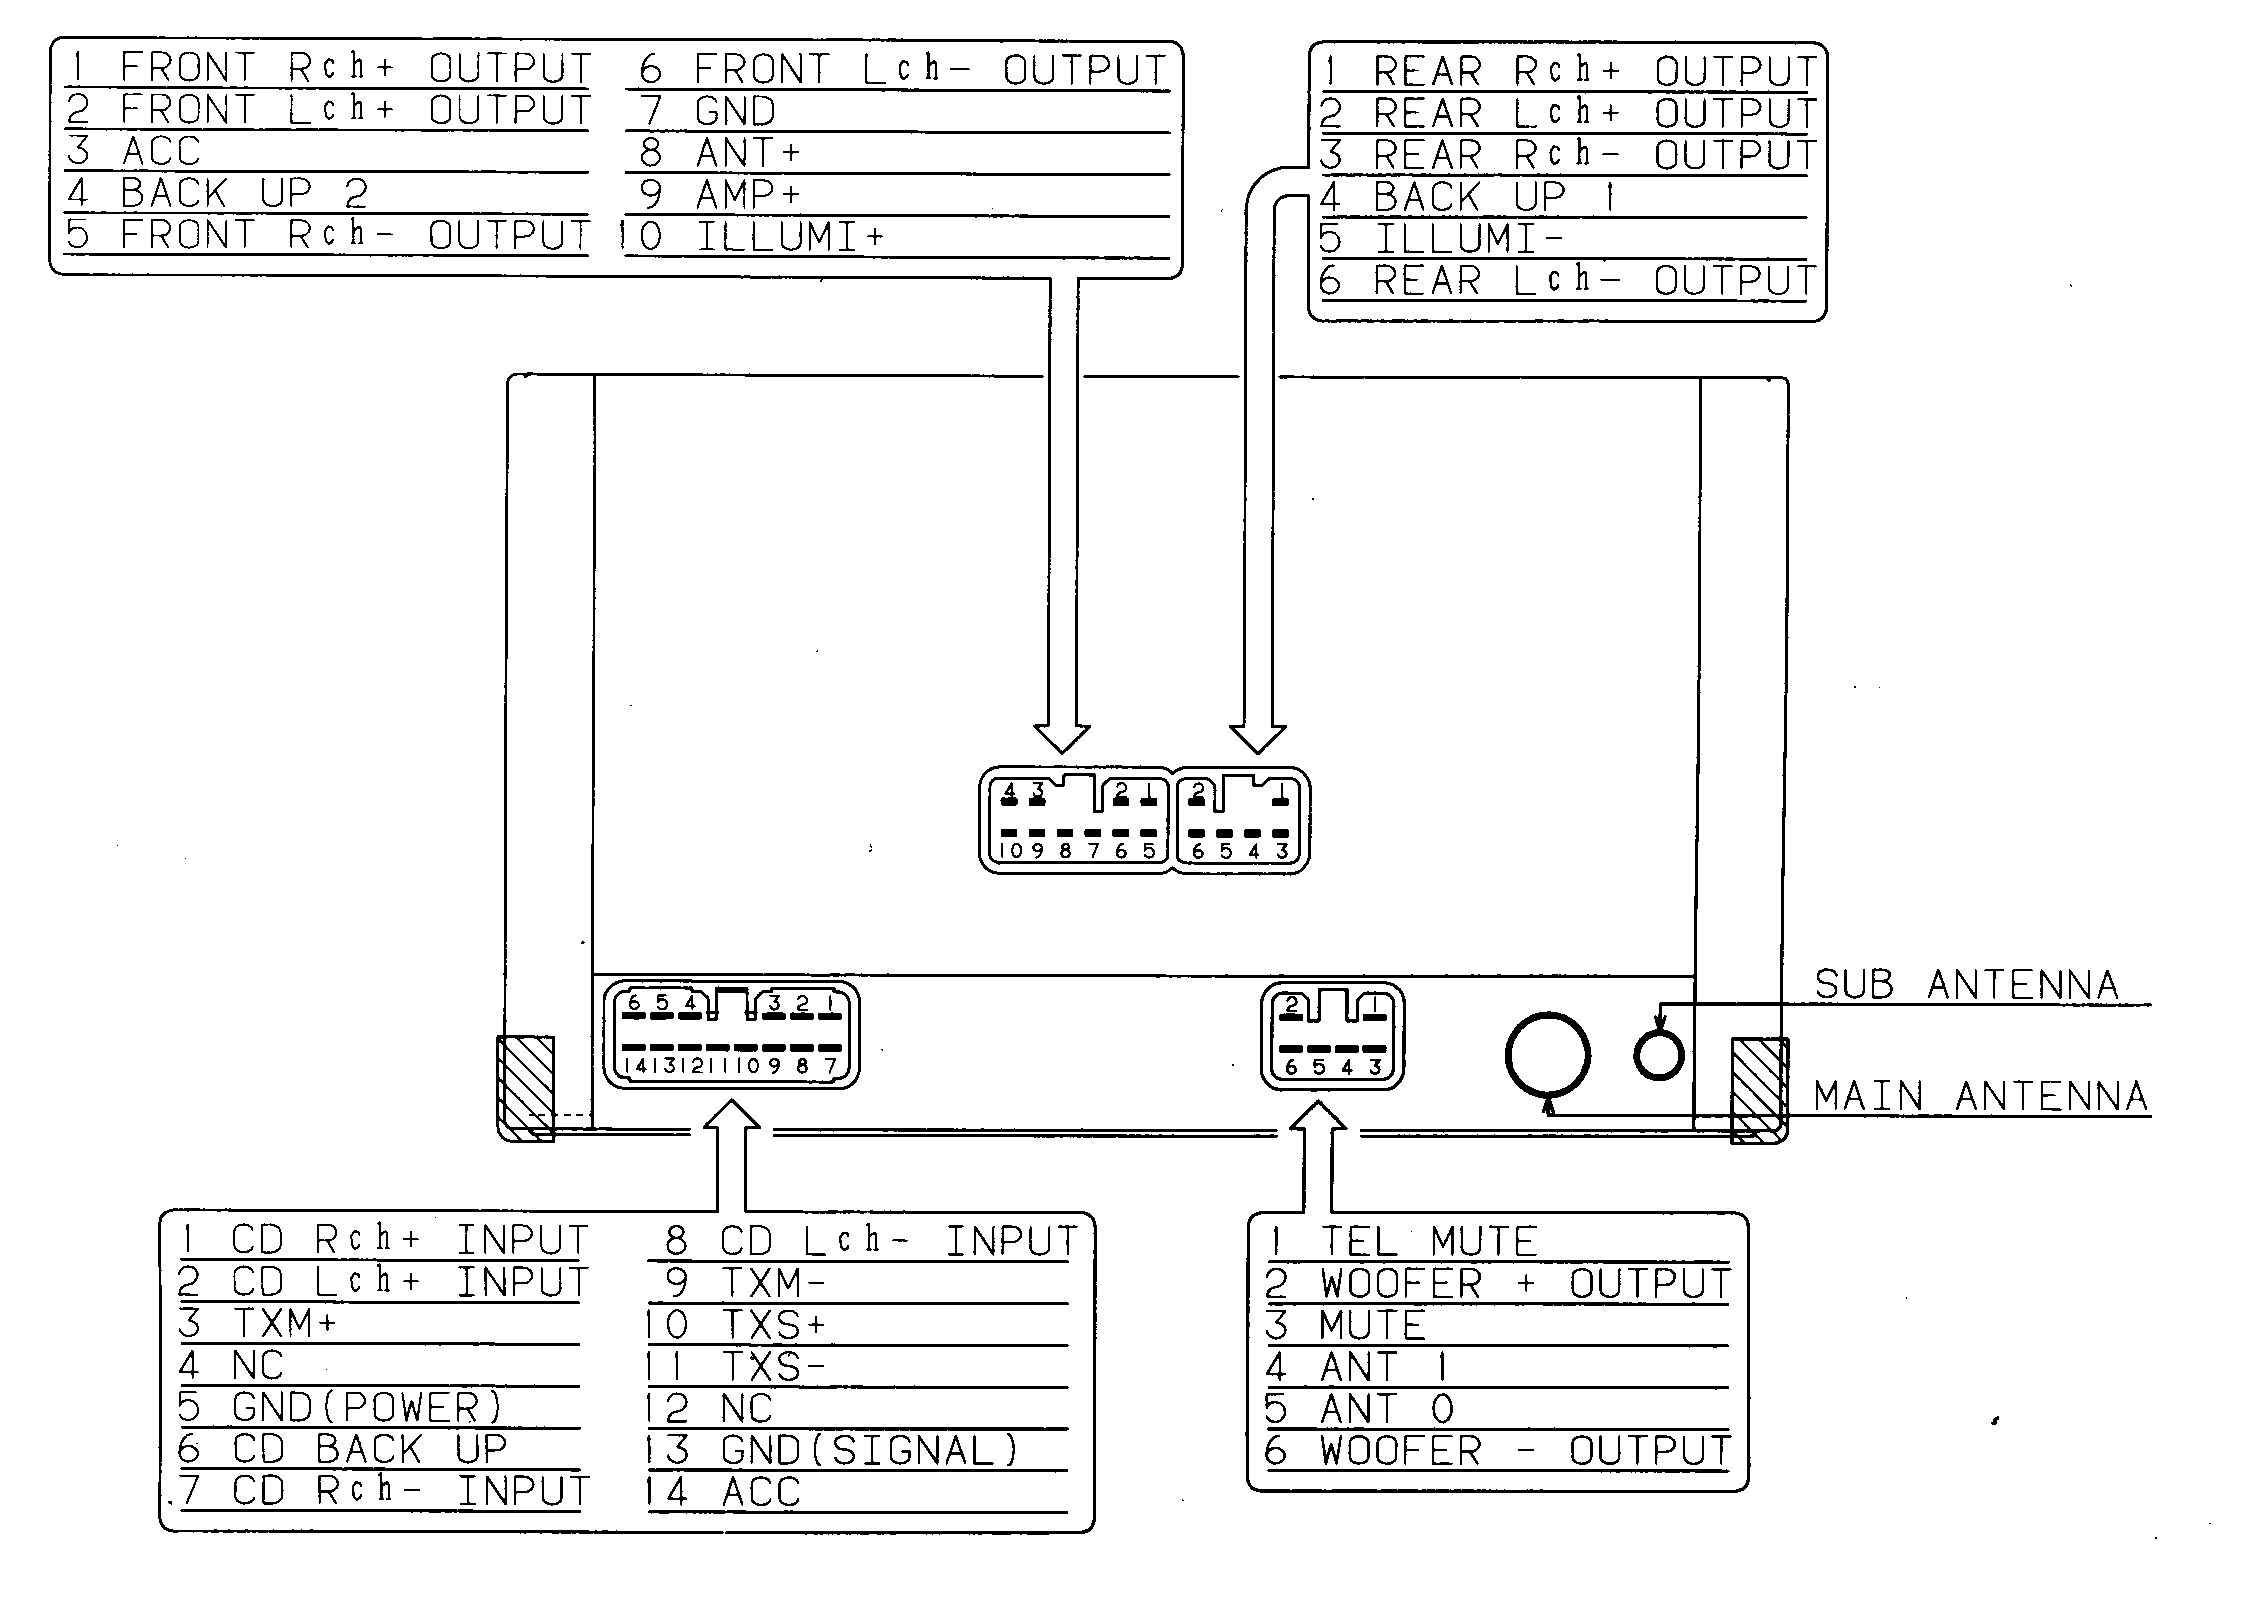 WireHarnessLexus121001 car audio wire diagram codes lexus factory car stereo repair dock wiring diagram at aneh.co